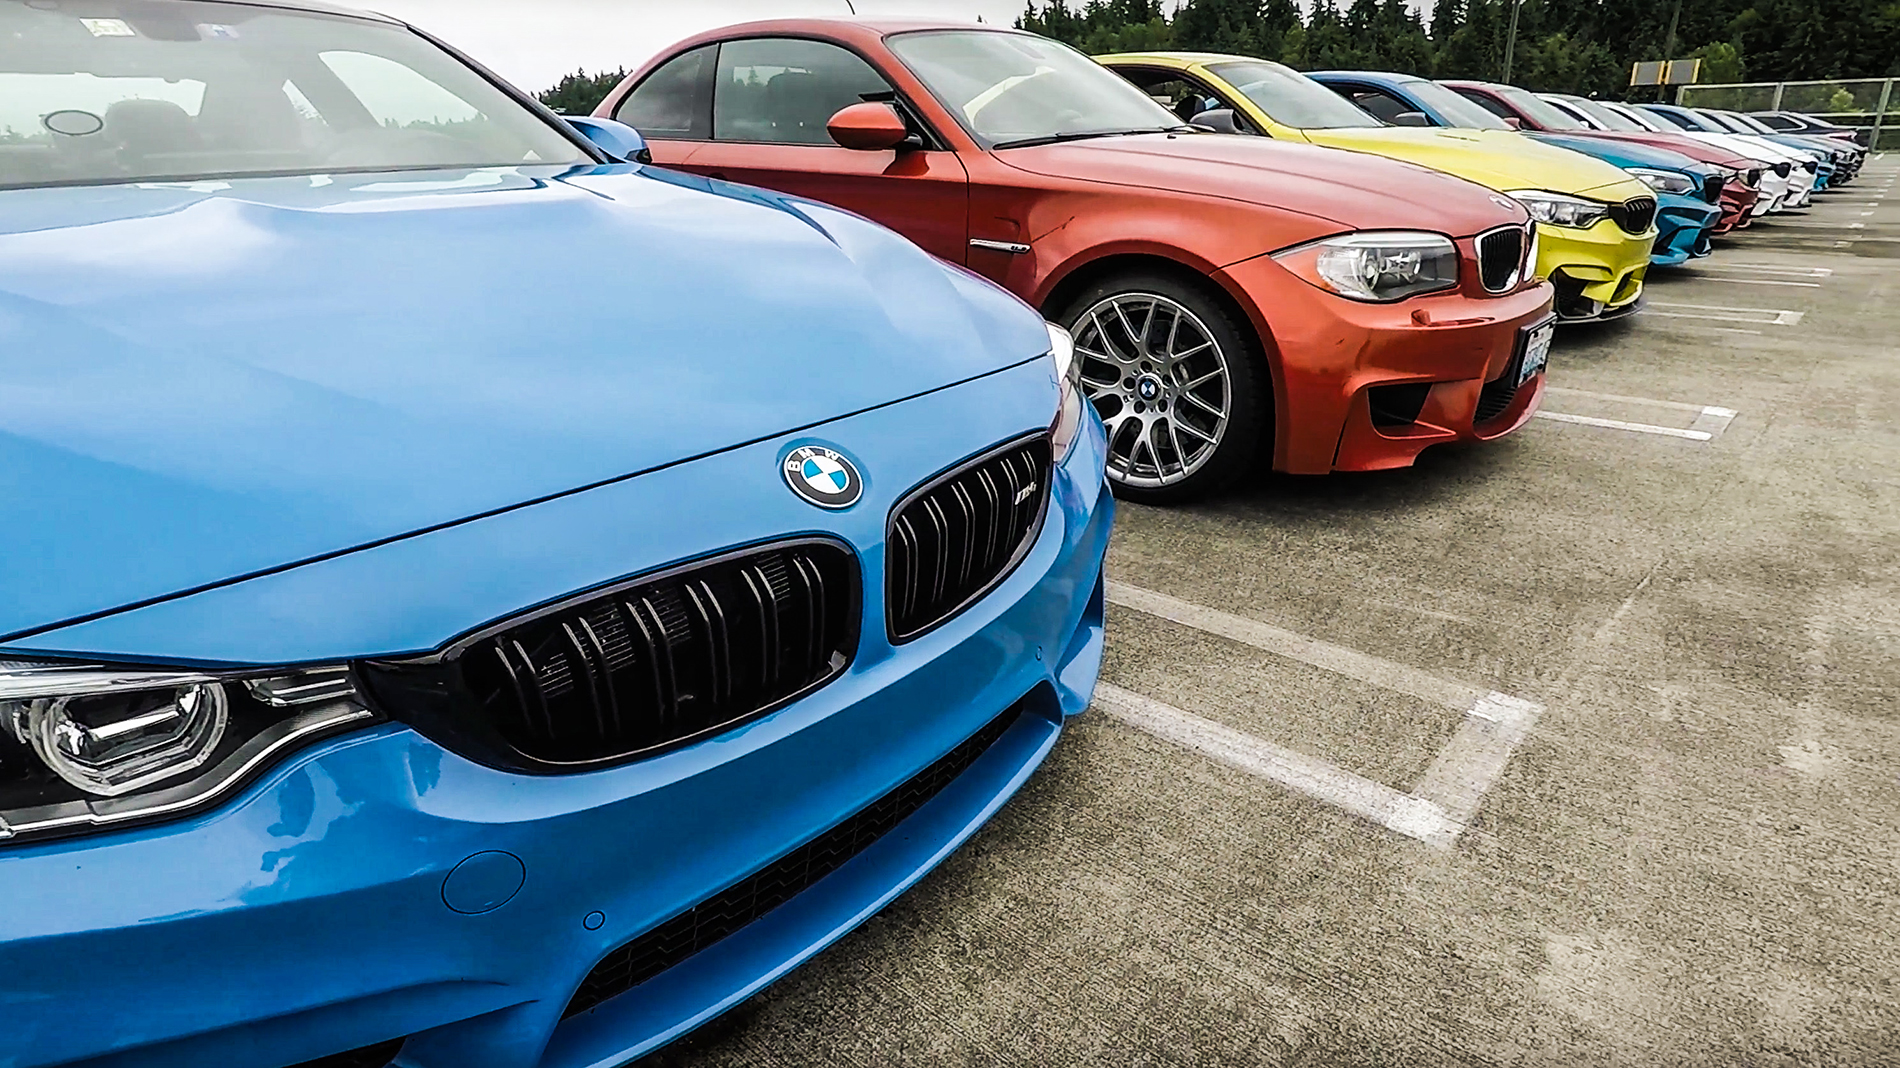 BMW M Owners Meet WA